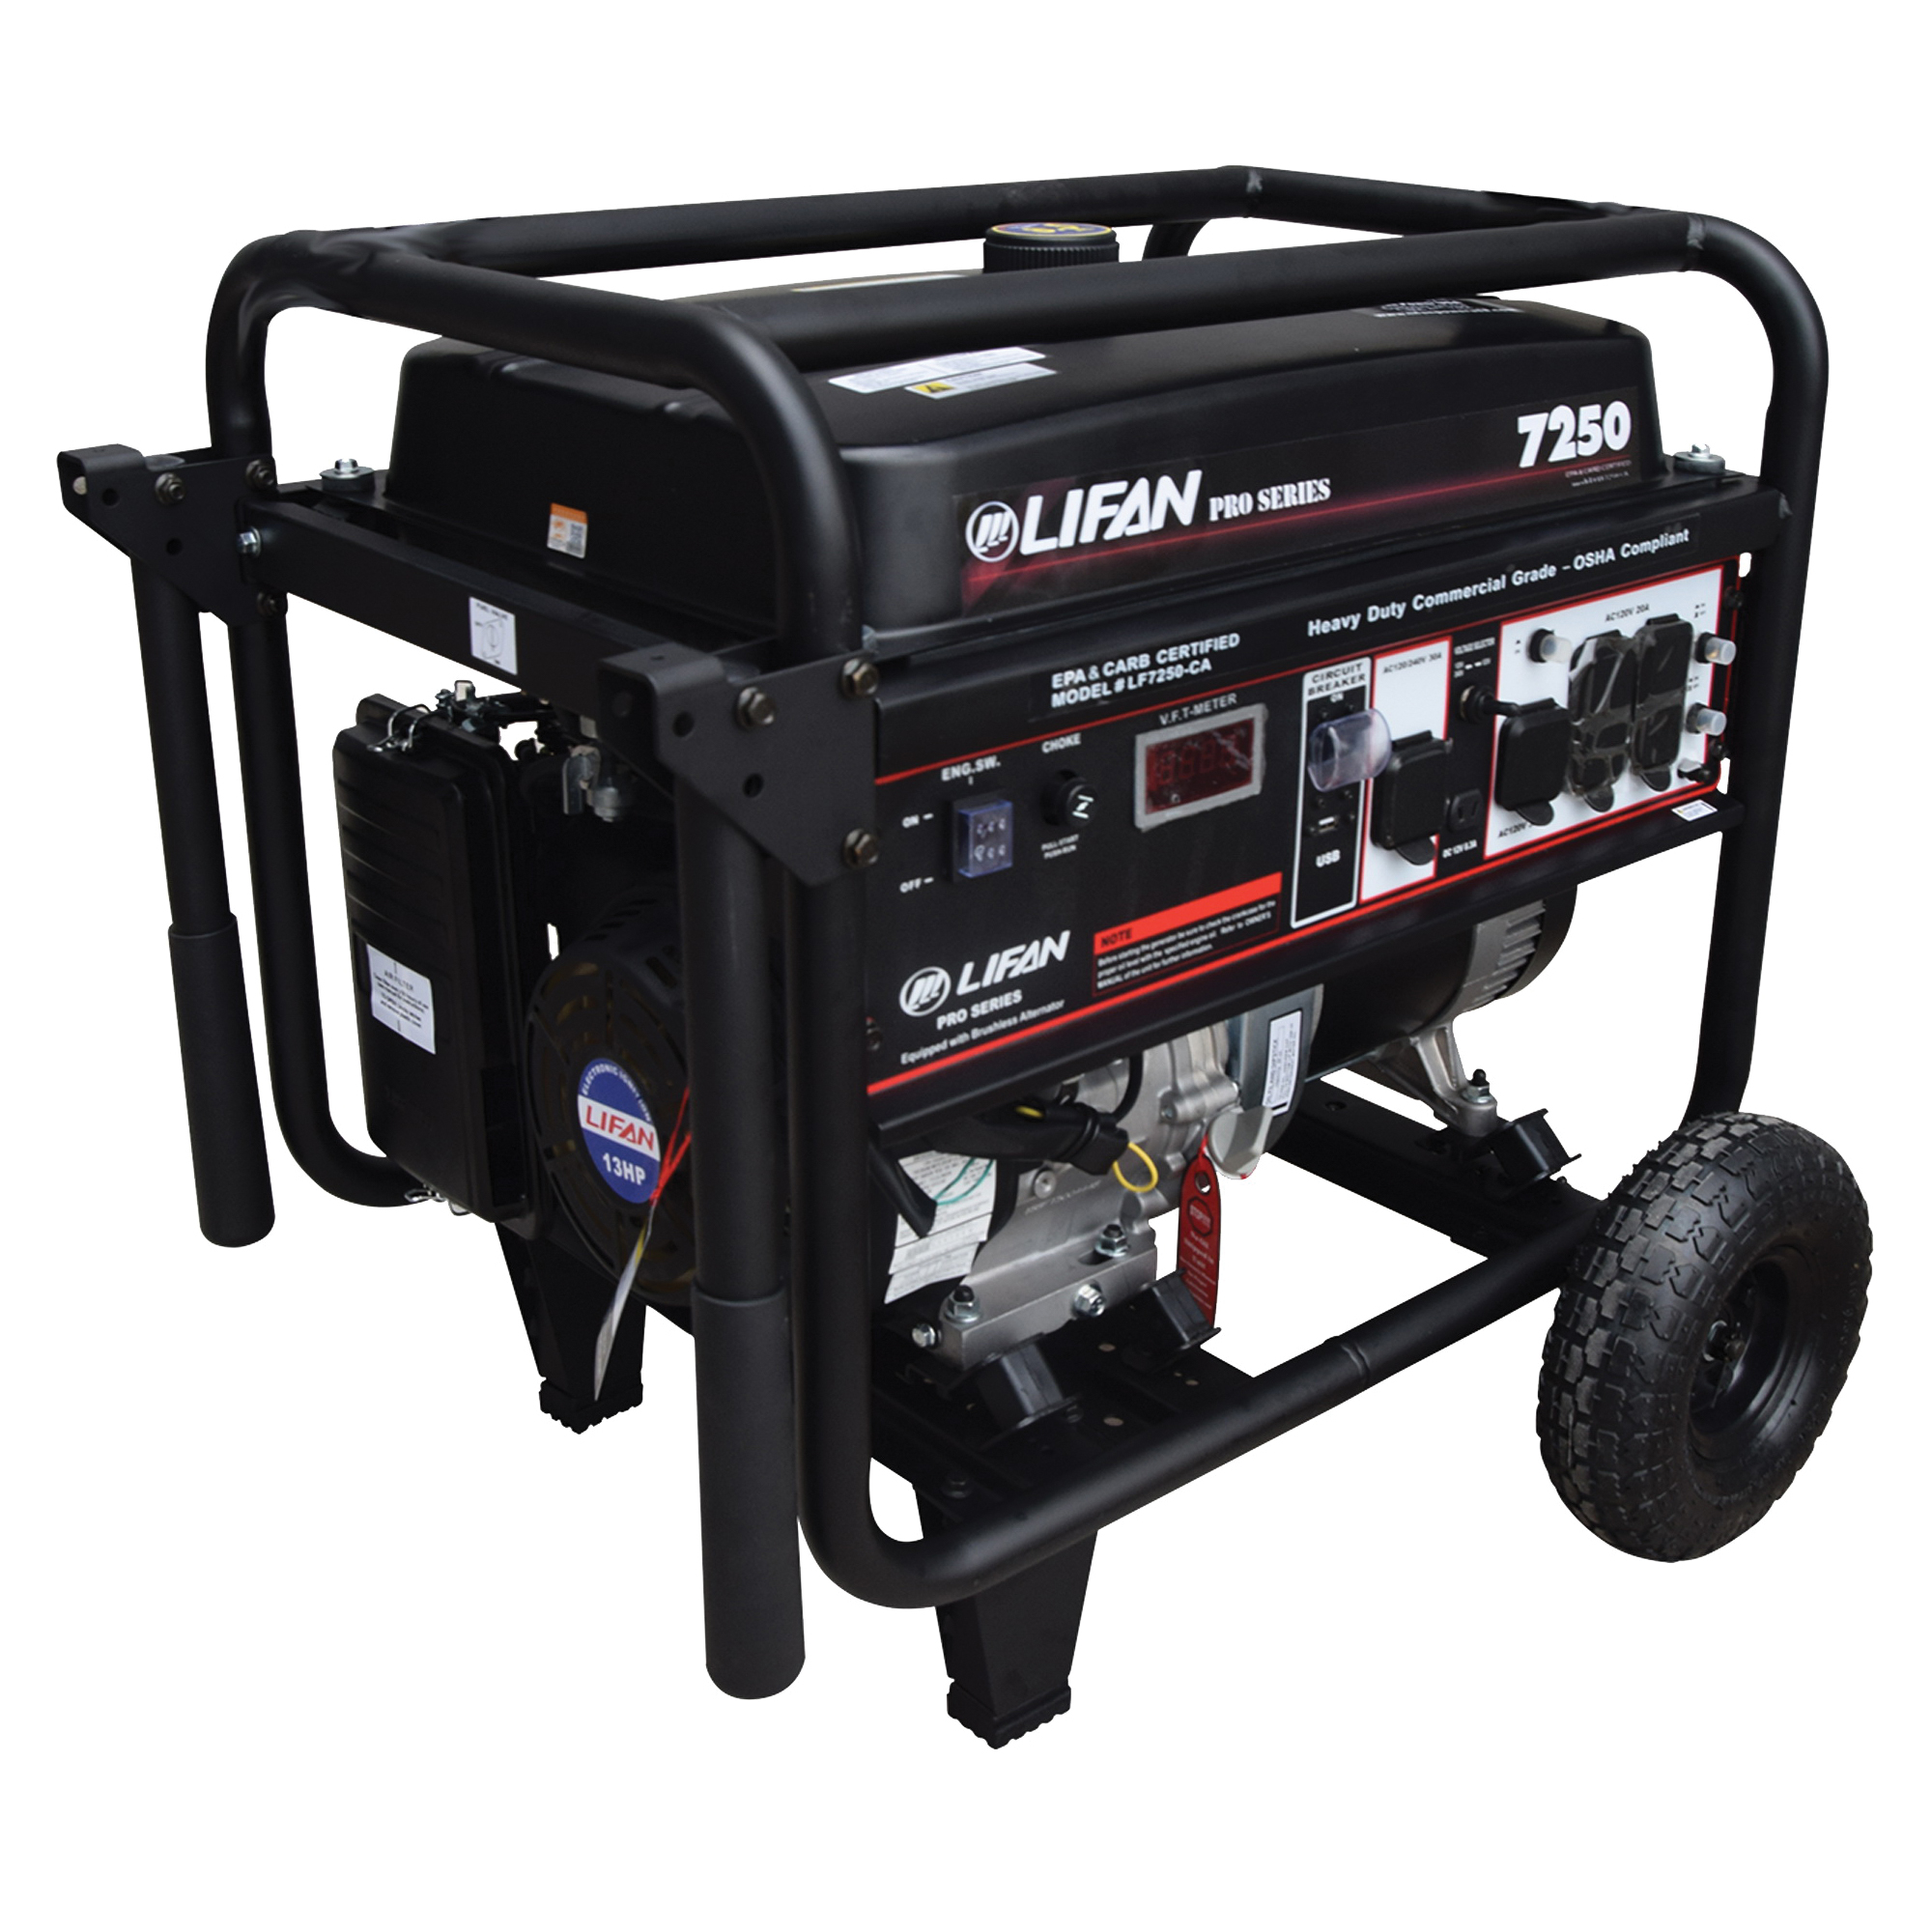 Picture of LIFAN LF7250 Generator, 50 A, 120/240 V, 7250 W Output, Unleaded Gas, 7.5 gal Tank, 12 hr Run Time, Recoil Start